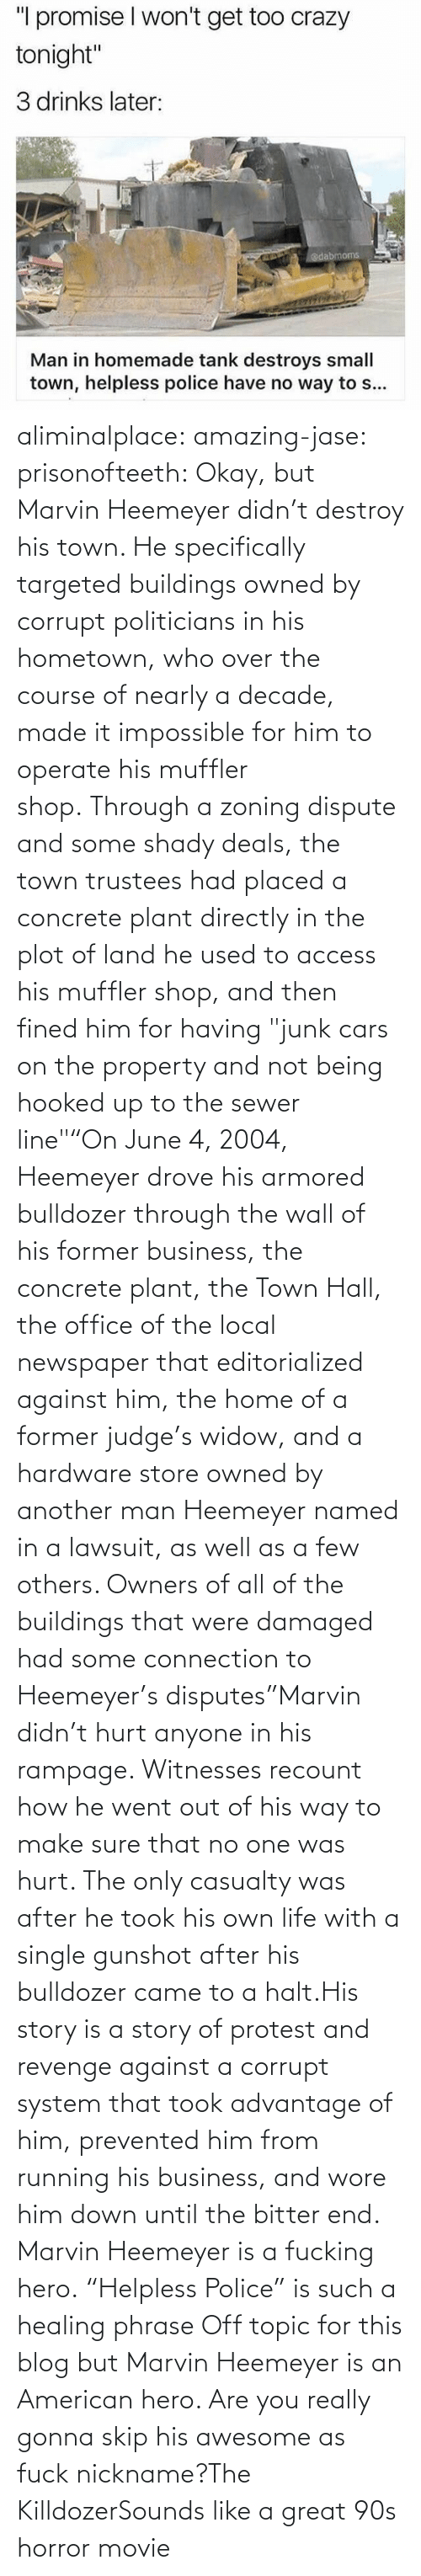 "No One: aliminalplace: amazing-jase:  prisonofteeth: Okay, but Marvin Heemeyer didn't destroy his town. He specifically targeted buildings owned by corrupt politicians in his hometown, who over the course of nearly a decade, made it impossible for him to operate his muffler shop. Through a zoning dispute and some shady deals, the town trustees had placed a concrete plant directly in the plot of land he used to access his muffler shop, and then fined him for having ""junk cars on the property and not being hooked up to the sewer line""""On June 4, 2004, Heemeyer drove his armored bulldozer through the wall of his former business, the concrete plant, the Town Hall, the office of the local newspaper that editorialized against him, the home of a former judge's widow, and a hardware store owned by another man Heemeyer named in a lawsuit, as well as a few others. Owners of all of the buildings that were damaged had some connection to Heemeyer's disputes""Marvin didn't hurt anyone in his rampage. Witnesses recount how he went out of his way to make sure that no one was hurt. The only casualty was after he took his own life with a single gunshot after his bulldozer came to a halt.His story is a story of protest and revenge against a corrupt system that took advantage of him, prevented him from running his business, and wore him down until the bitter end. Marvin Heemeyer is a fucking hero. ""Helpless Police"" is such a healing phrase    Off topic for this blog but Marvin Heemeyer is an American hero.     Are you really gonna skip his awesome as fuck nickname?The KilldozerSounds like a great 90s horror movie"